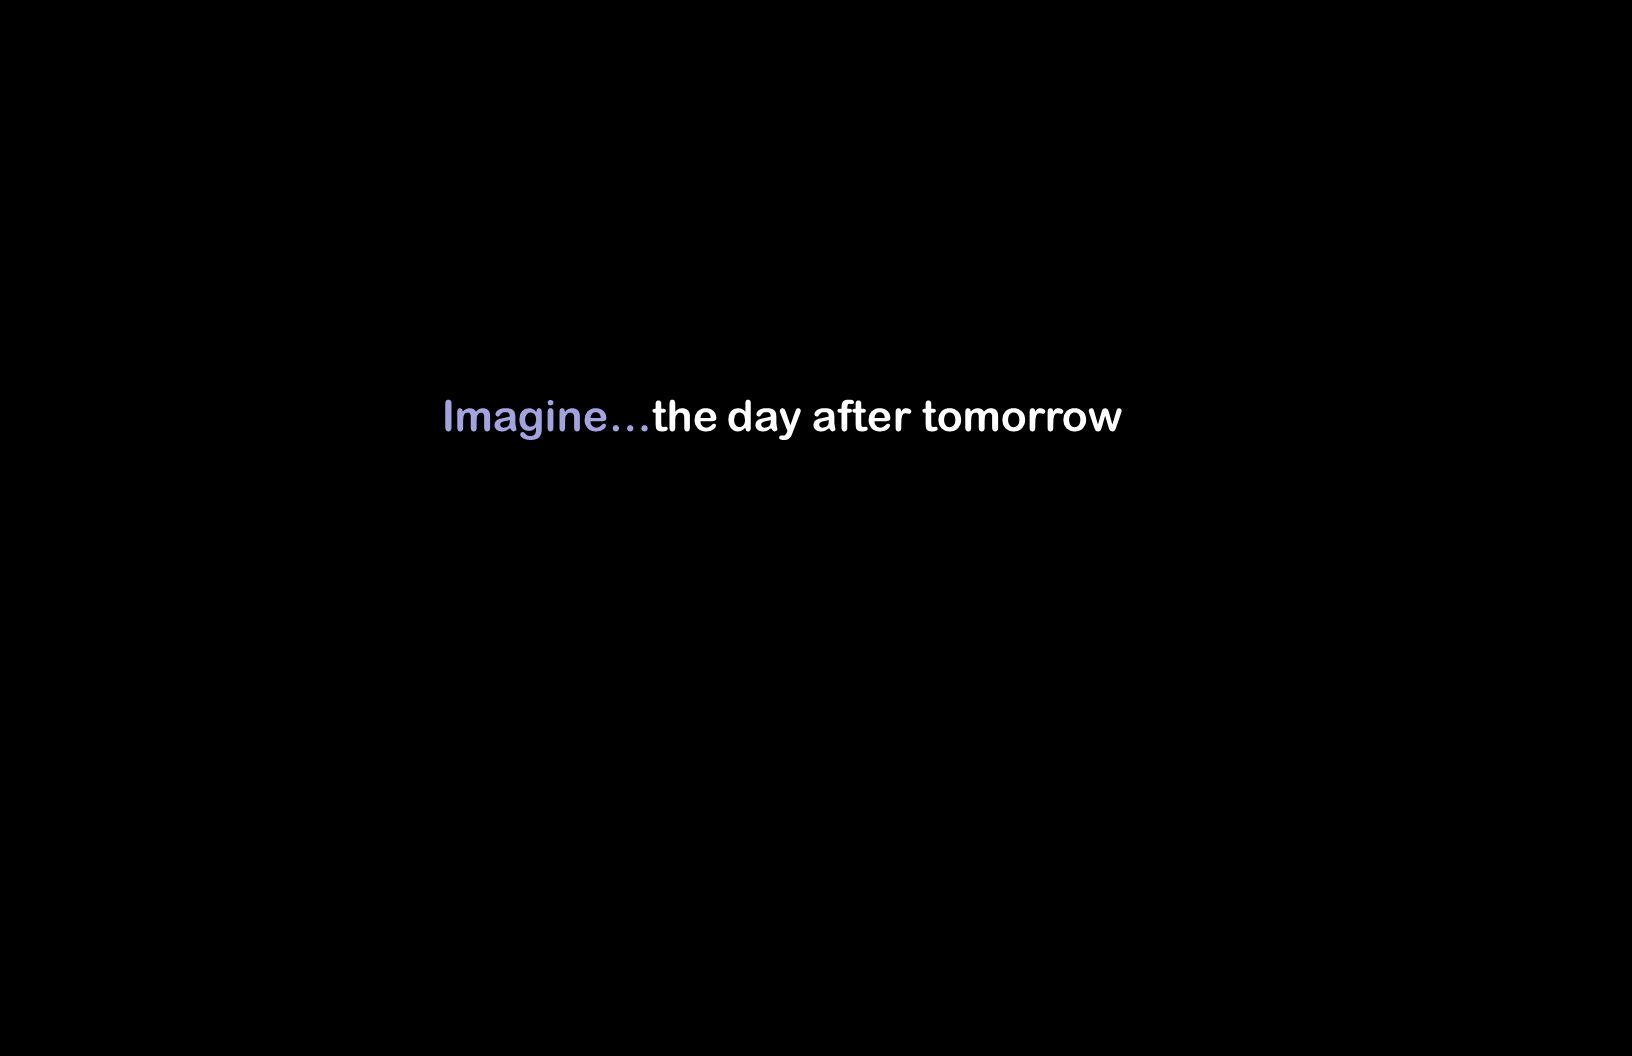 Imagine…the day after tomorrow